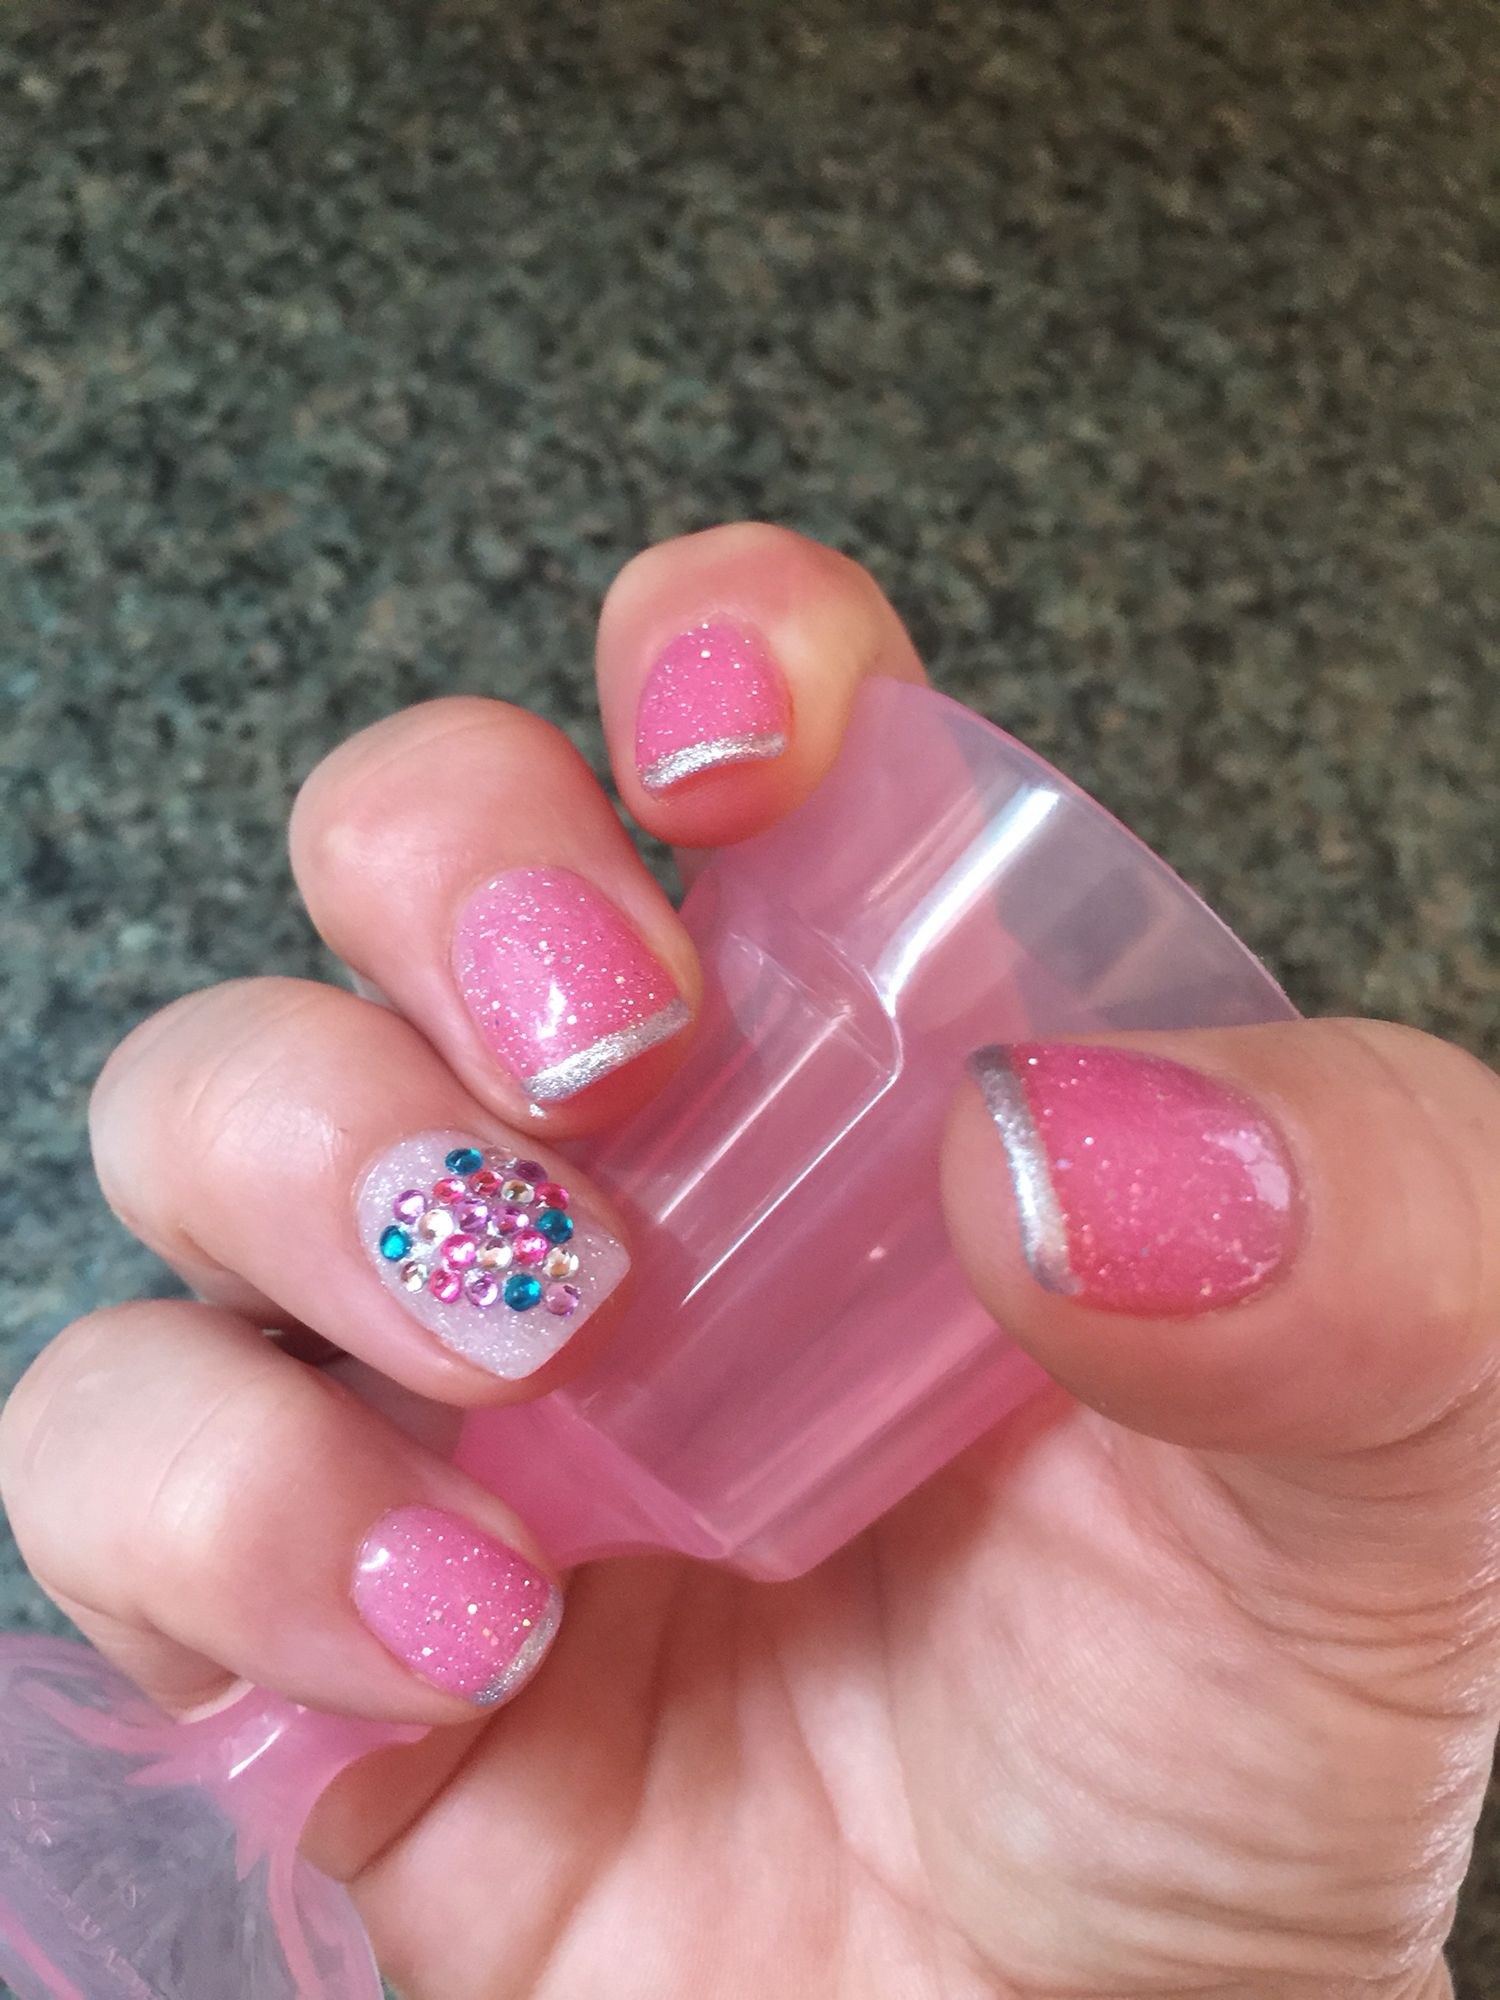 New Next Gen nails pink and white sparkle polish with silver tips ...